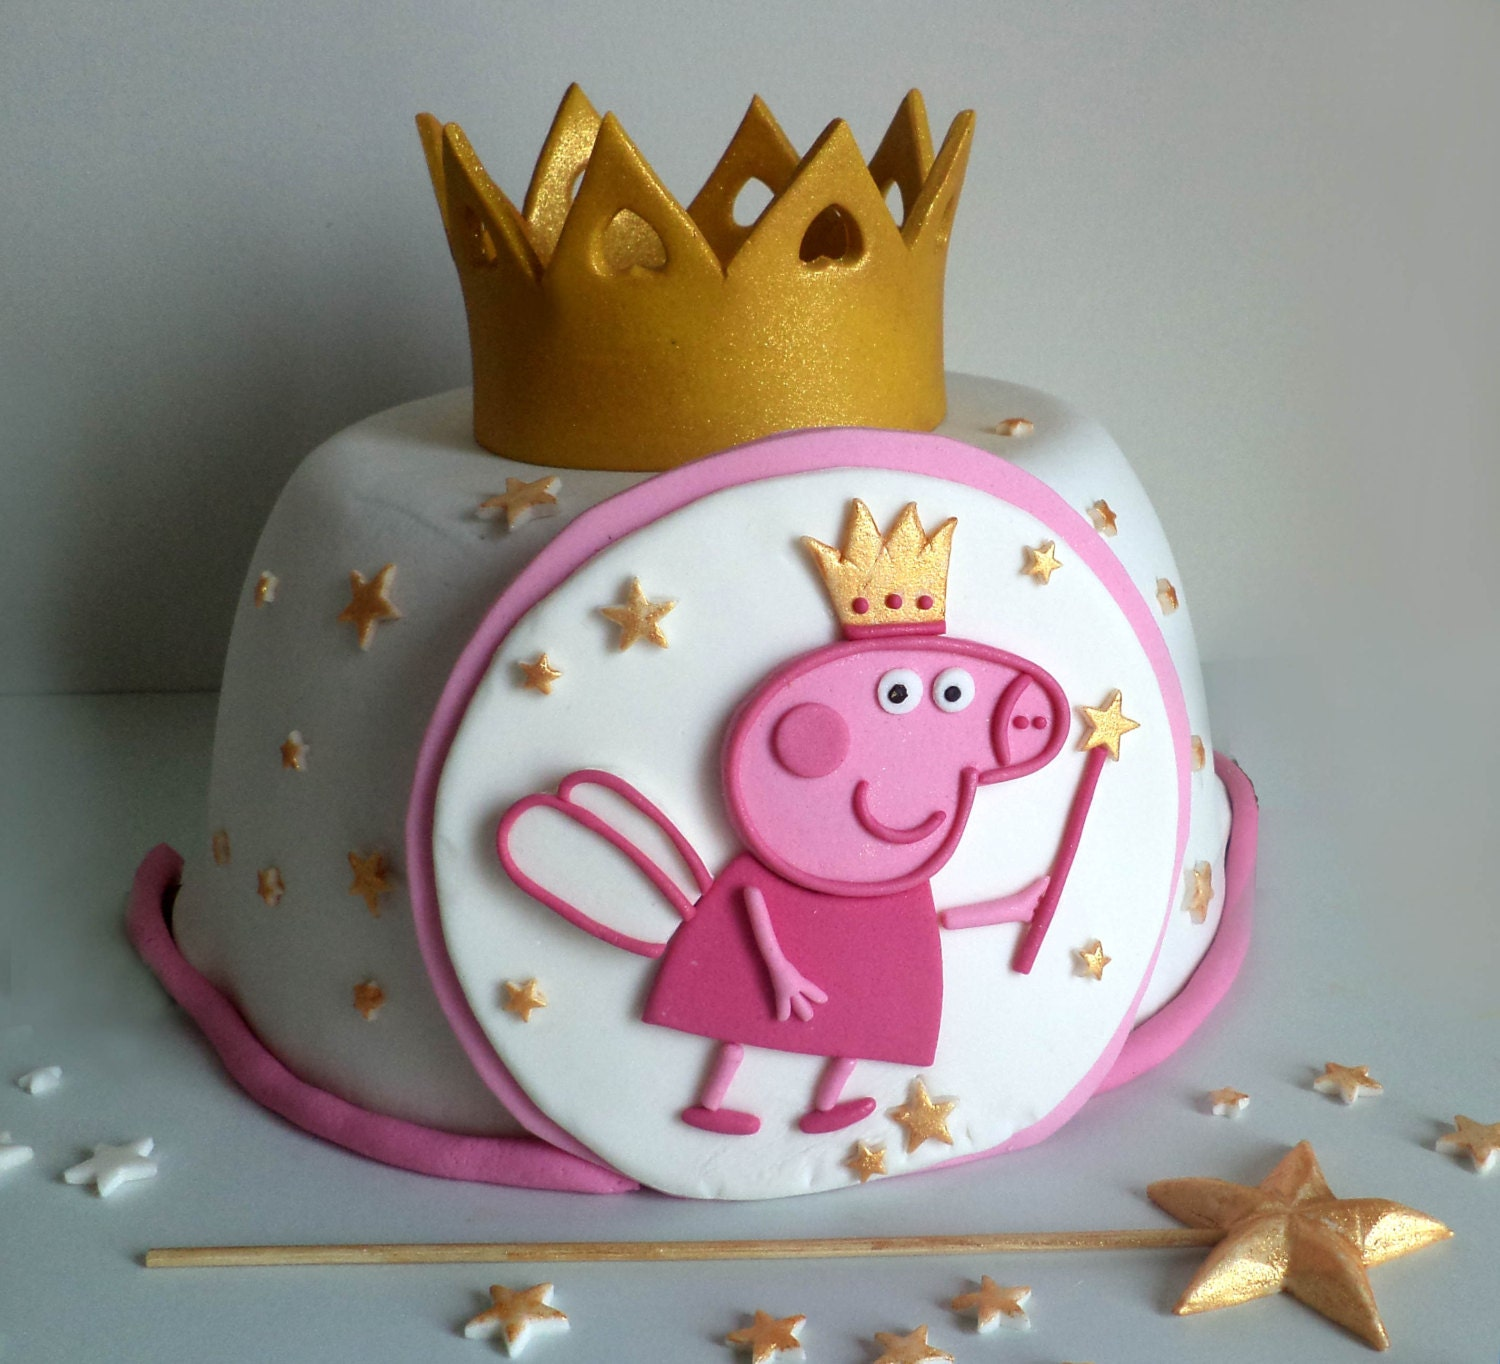 Peppa Pig Fairy Princess Fondant Cake Topper with Gold Crown